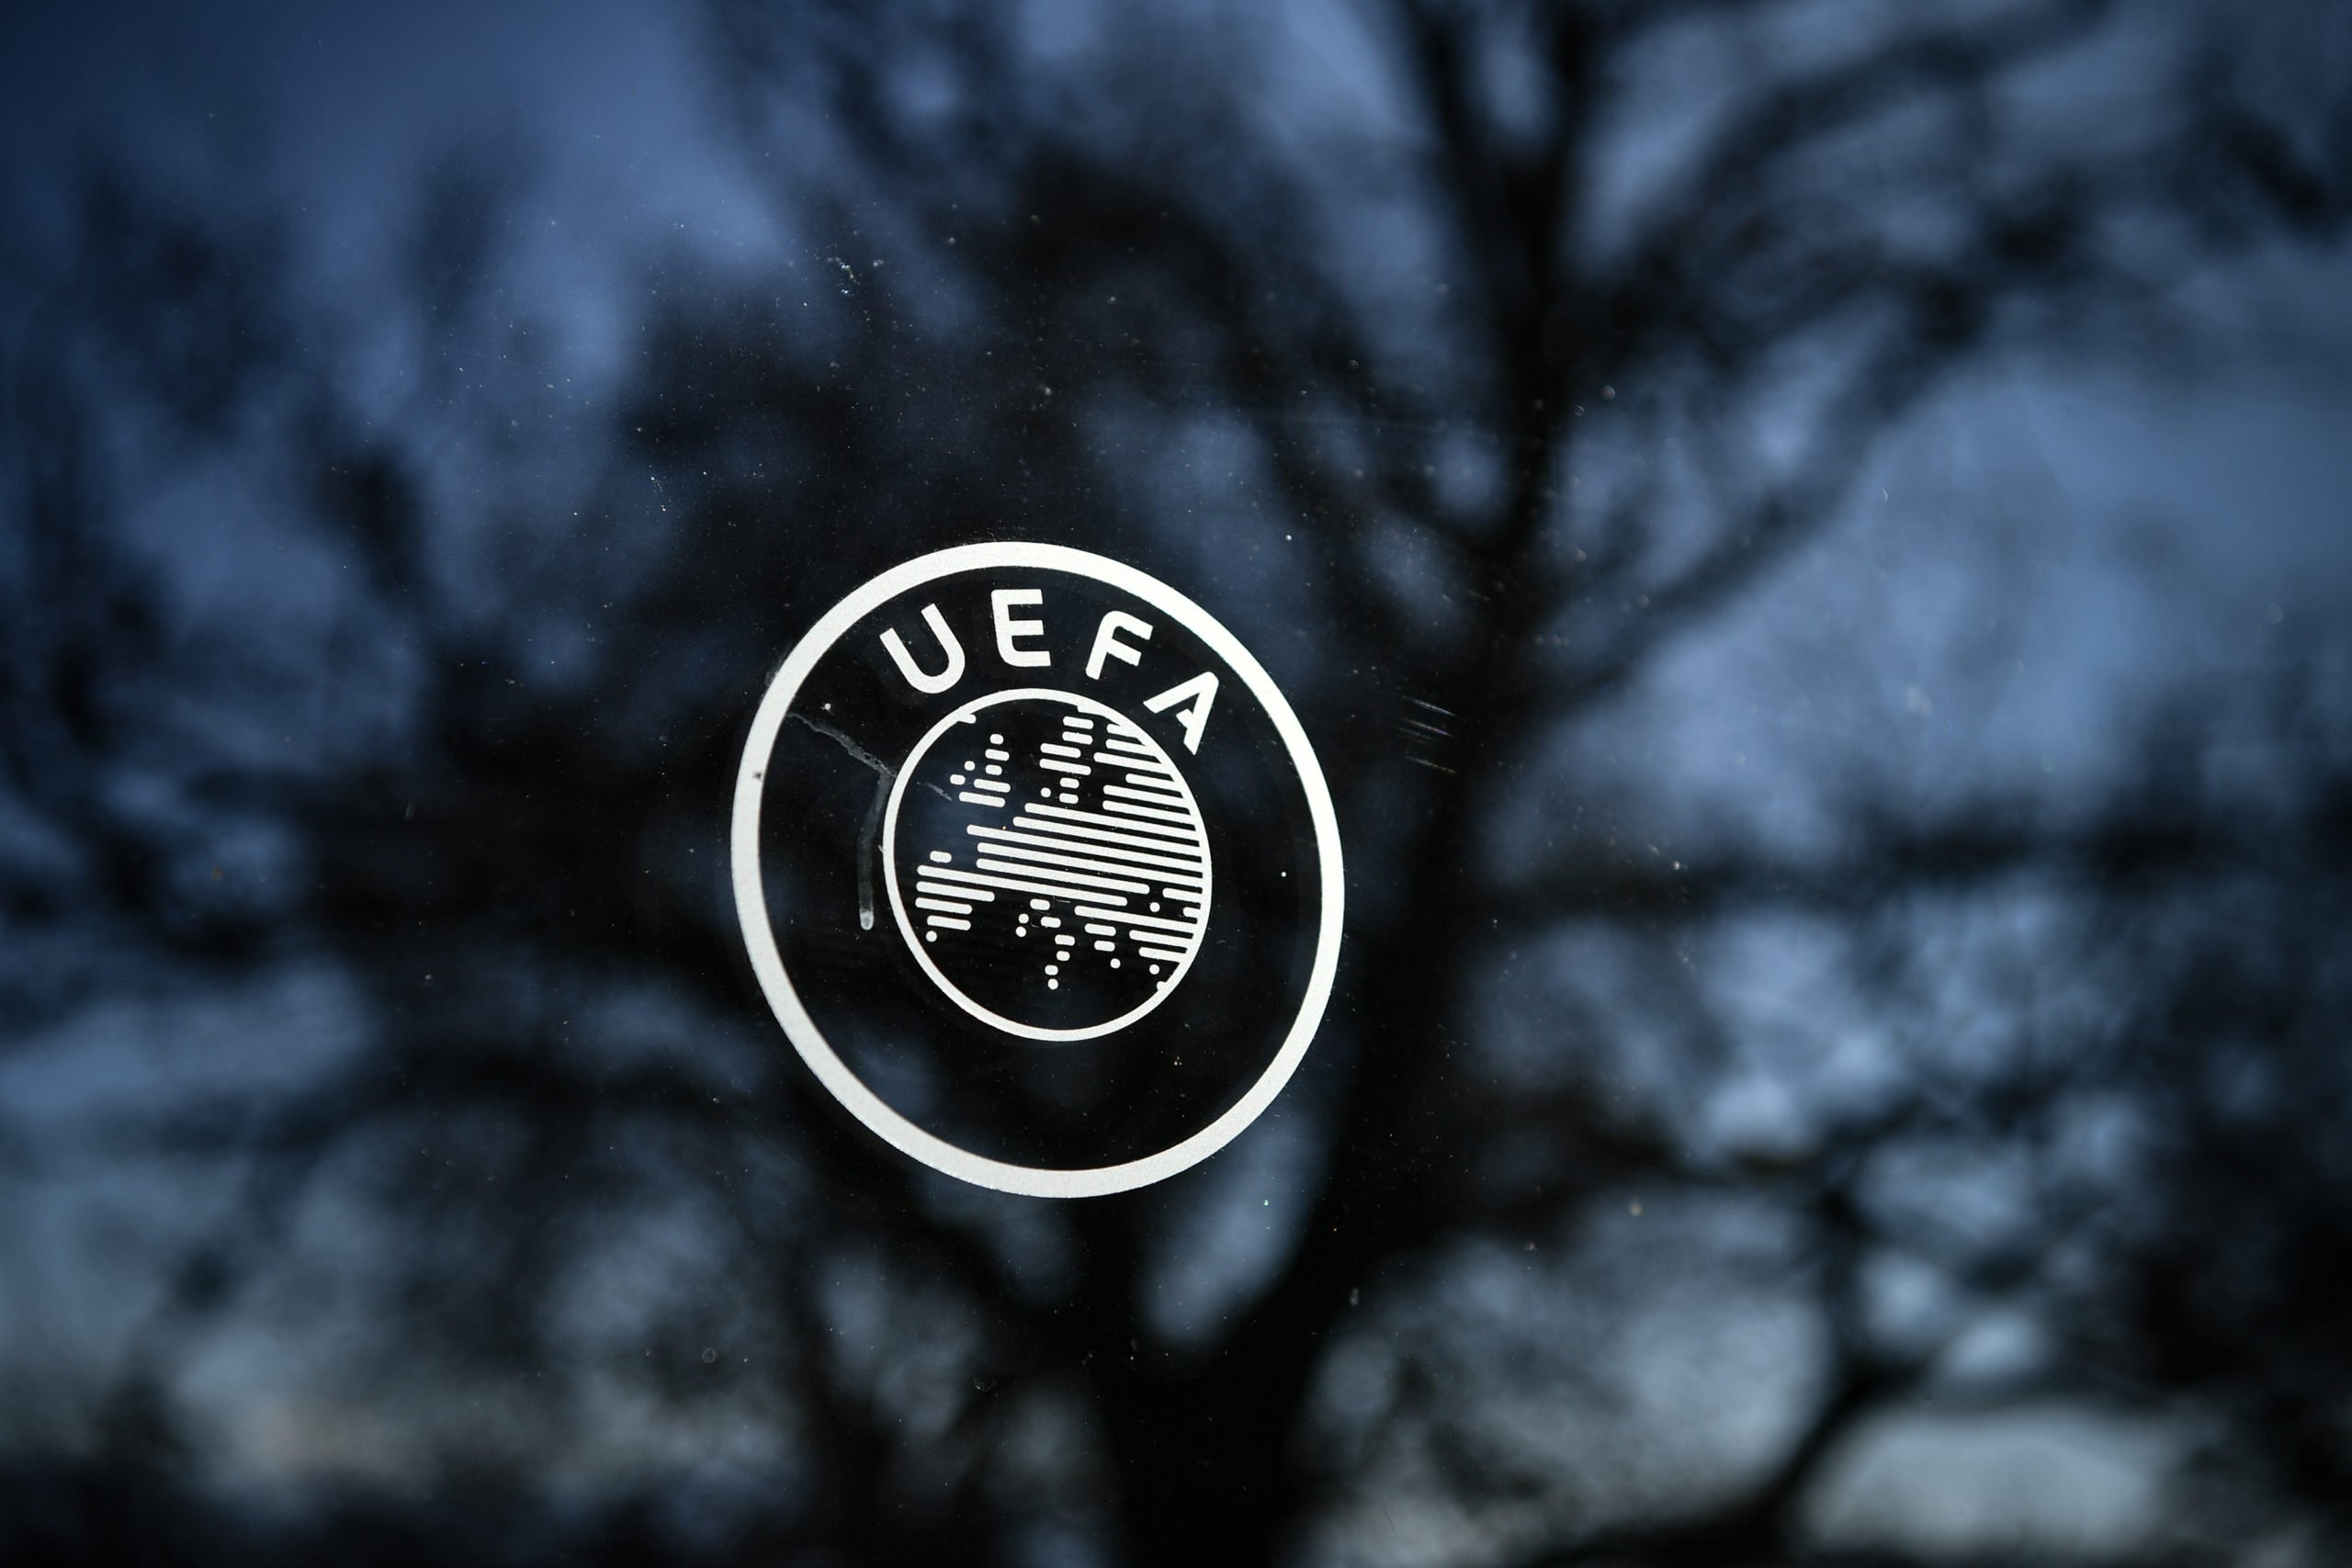 UEFA are happy for friendlies to go ahead